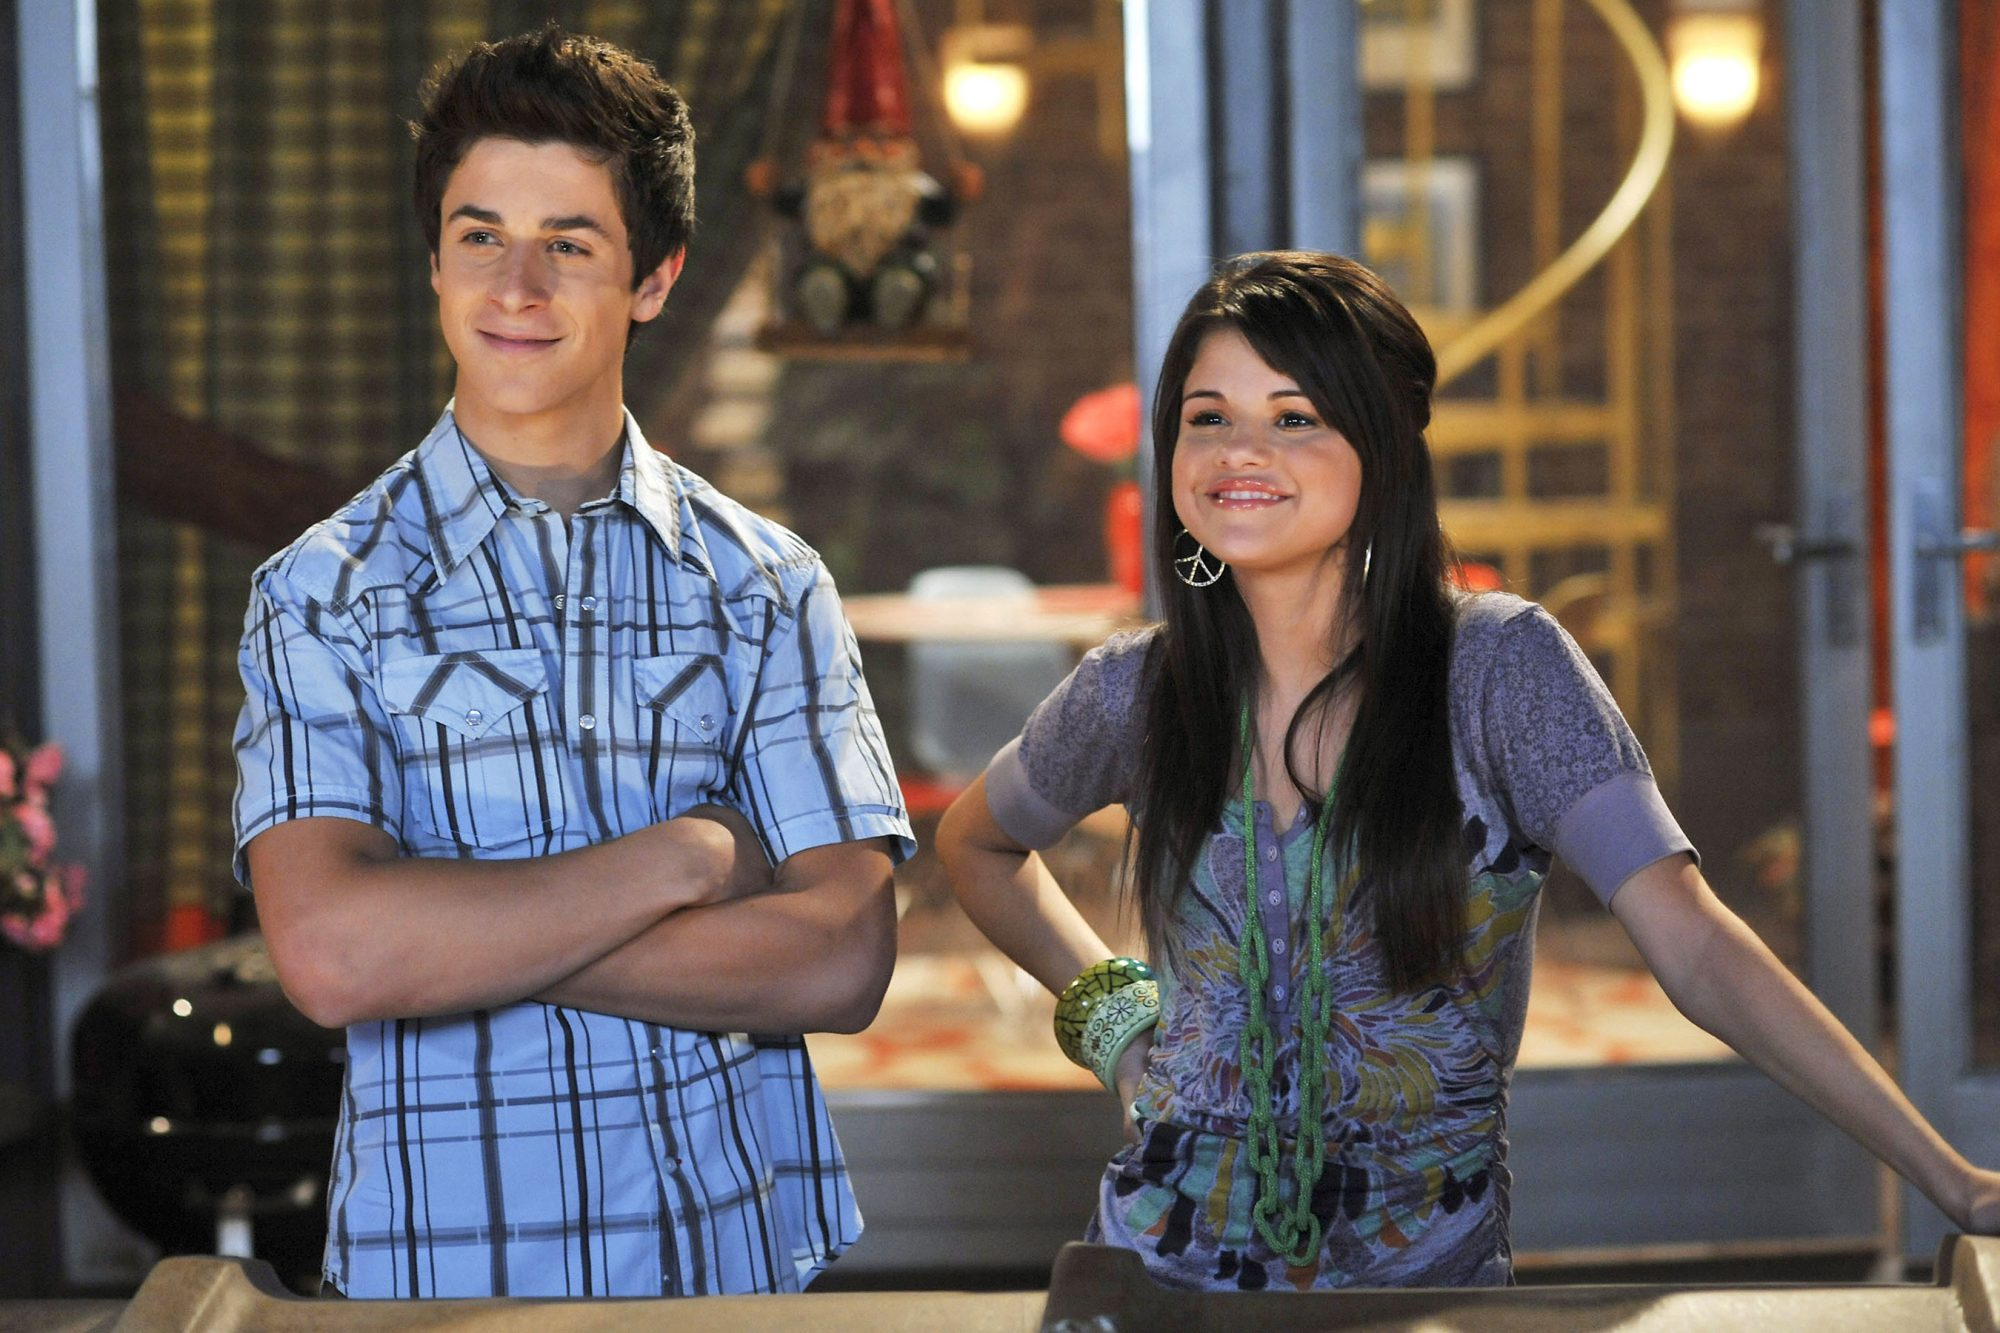 The Wizards Of Waverly Place - 2007